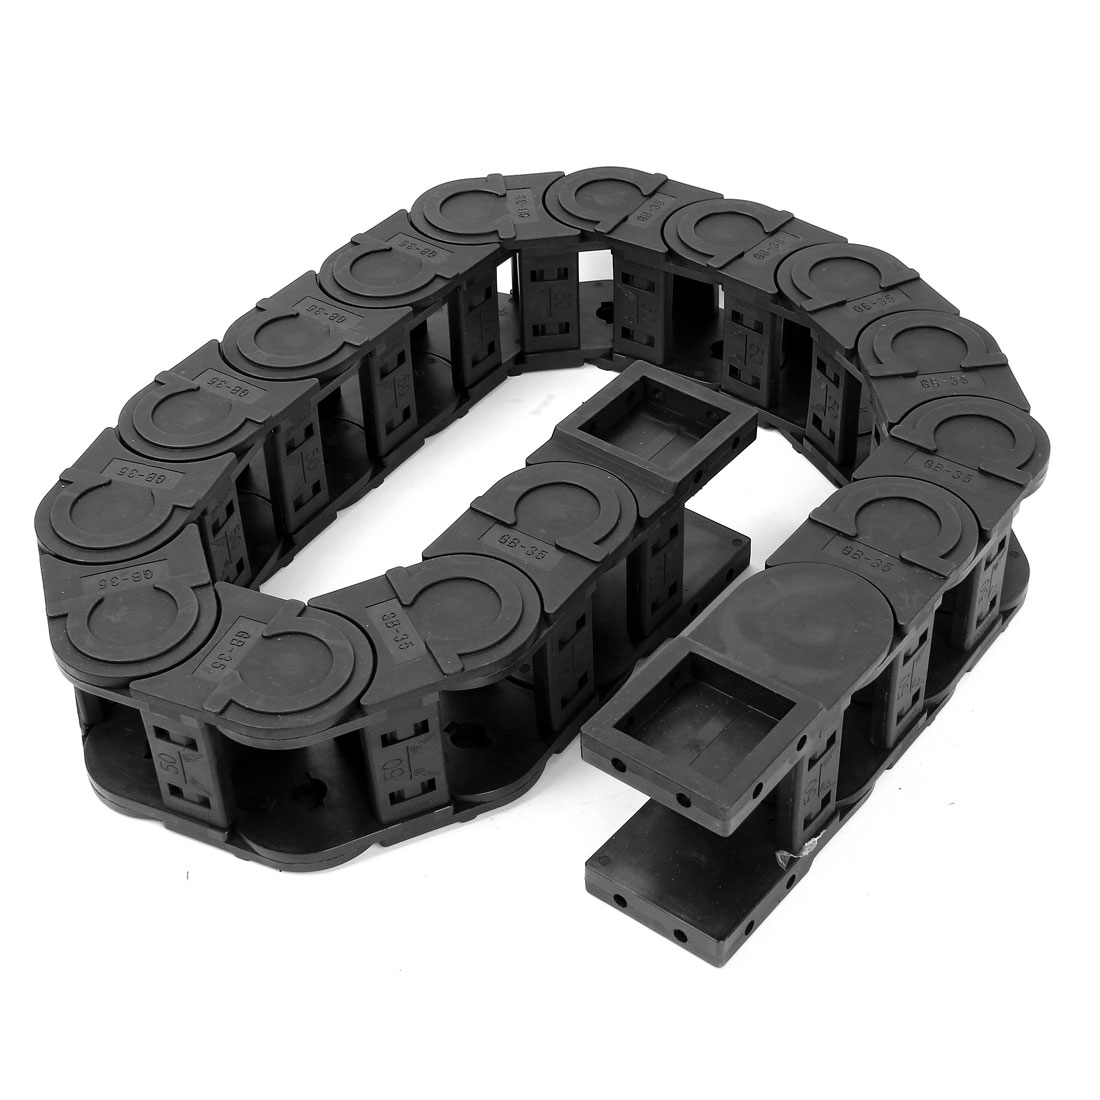 Black Plastic Drag Chain Cable Carrier 35 x 50mm for CNC Machine